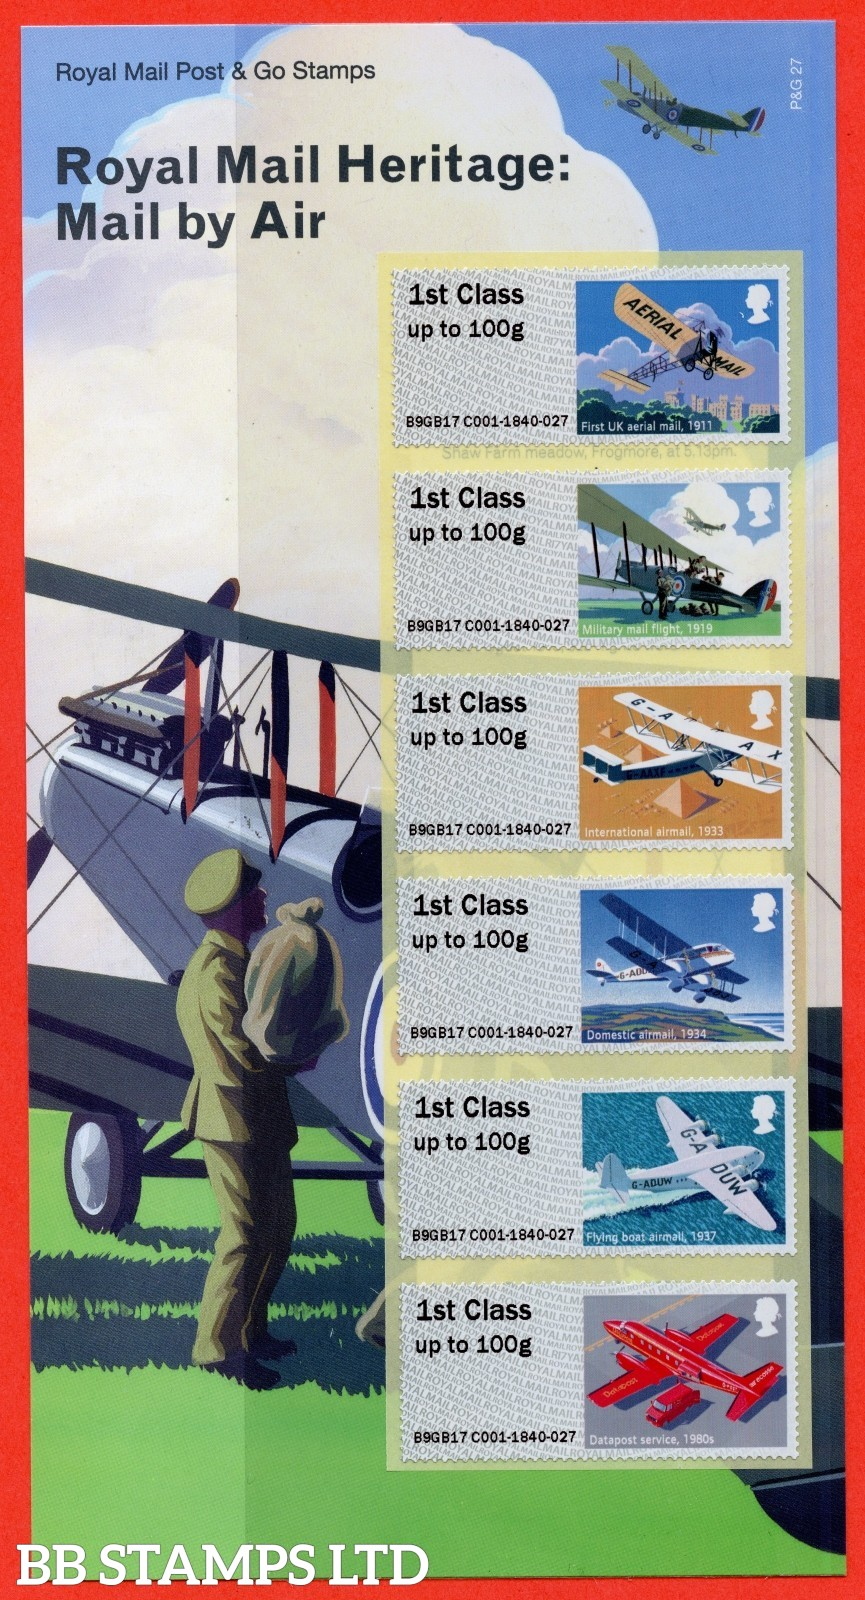 2017 Post and Go: Royal Mail Heritage Mail By Air. 6 x 1st Class Different Designs